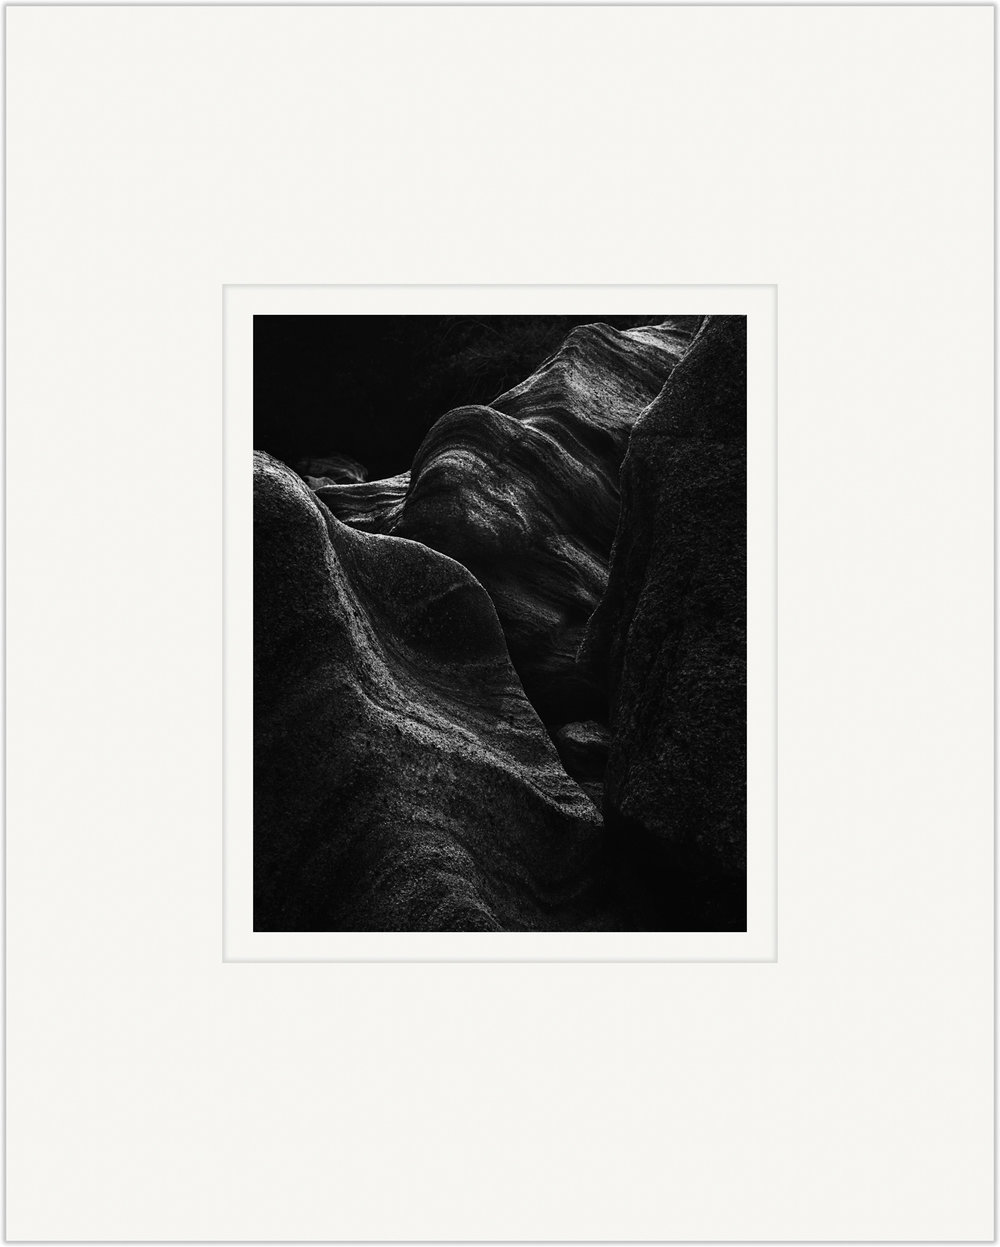 Untitled (Layered Rocks)   20cm x 25cm Photo Paper Limited Edition of 99   IDR 399,000